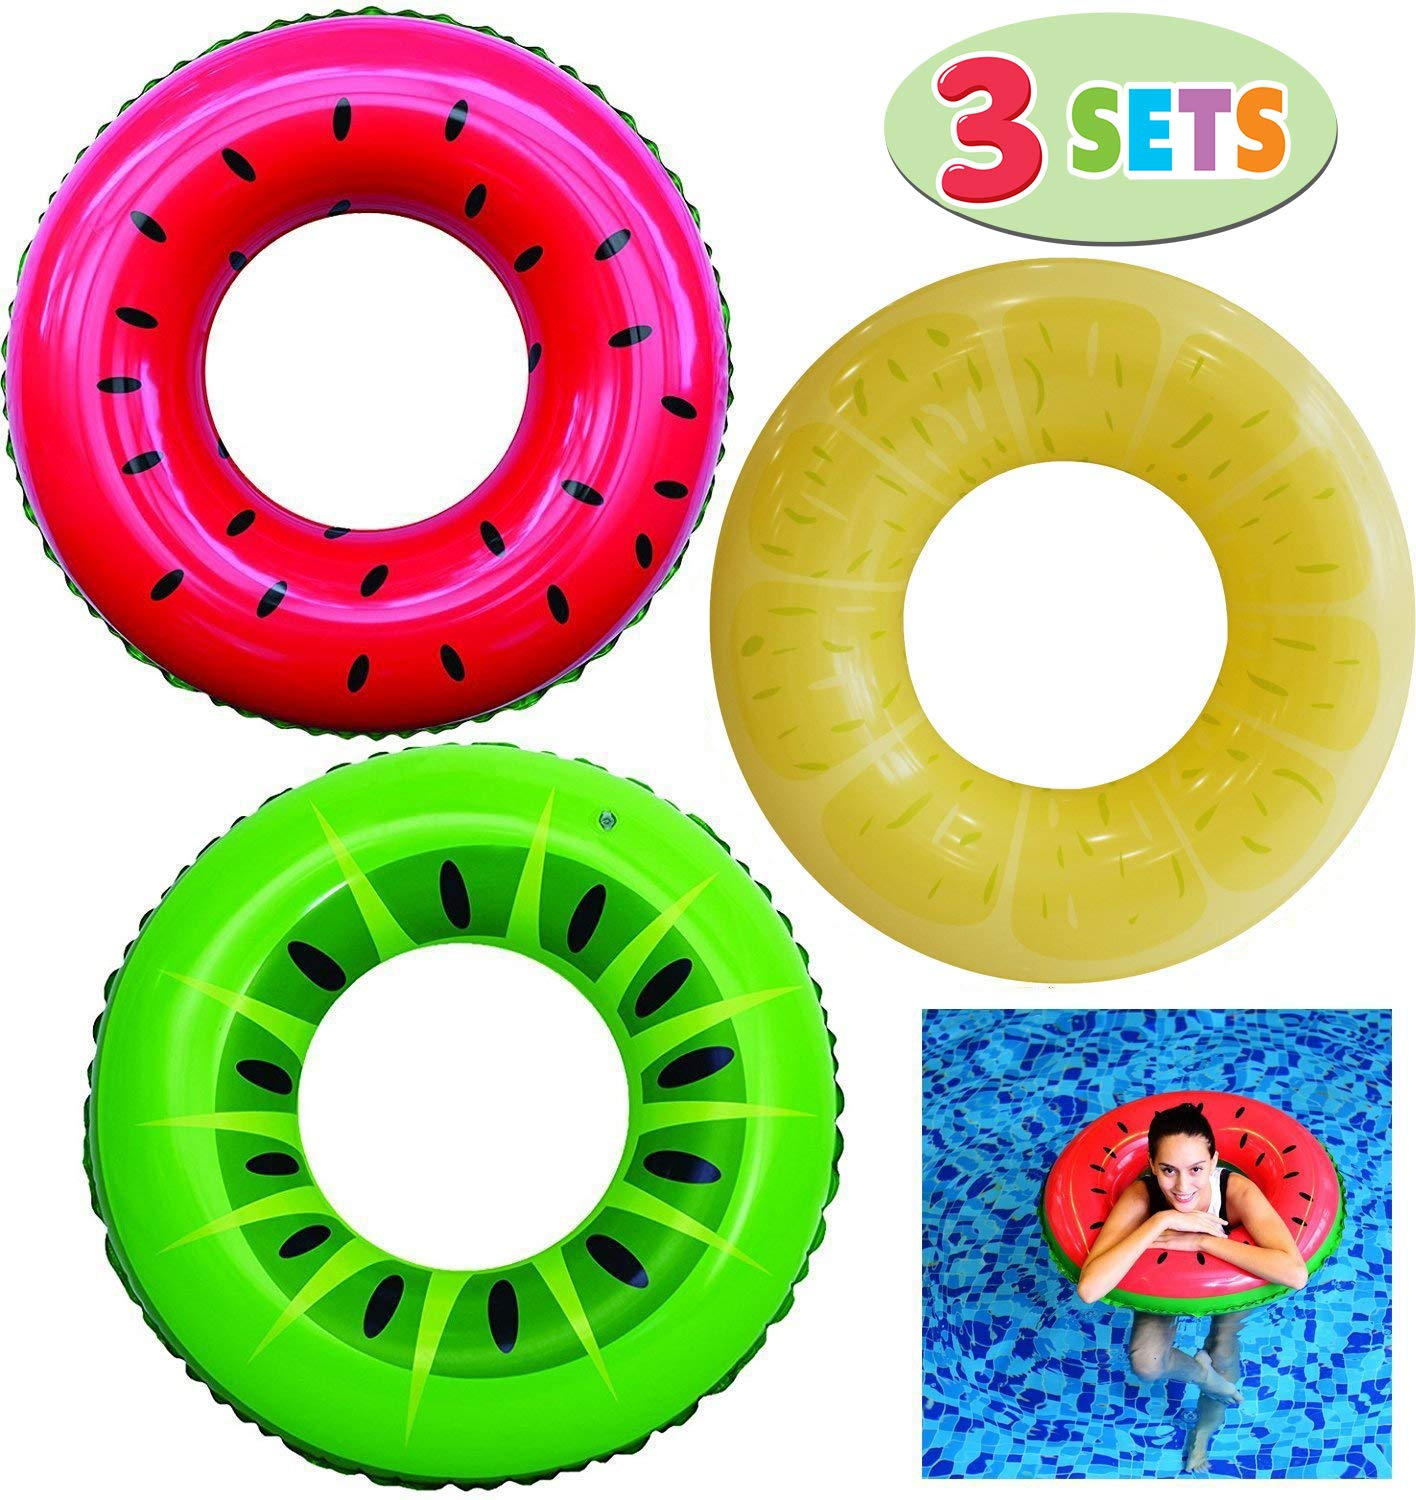 JOYIN Inflatable Swim Tube Raft (3 Pack) with Summer Fruits Painting, Pool Toys for Swimming Pool Party Decorations